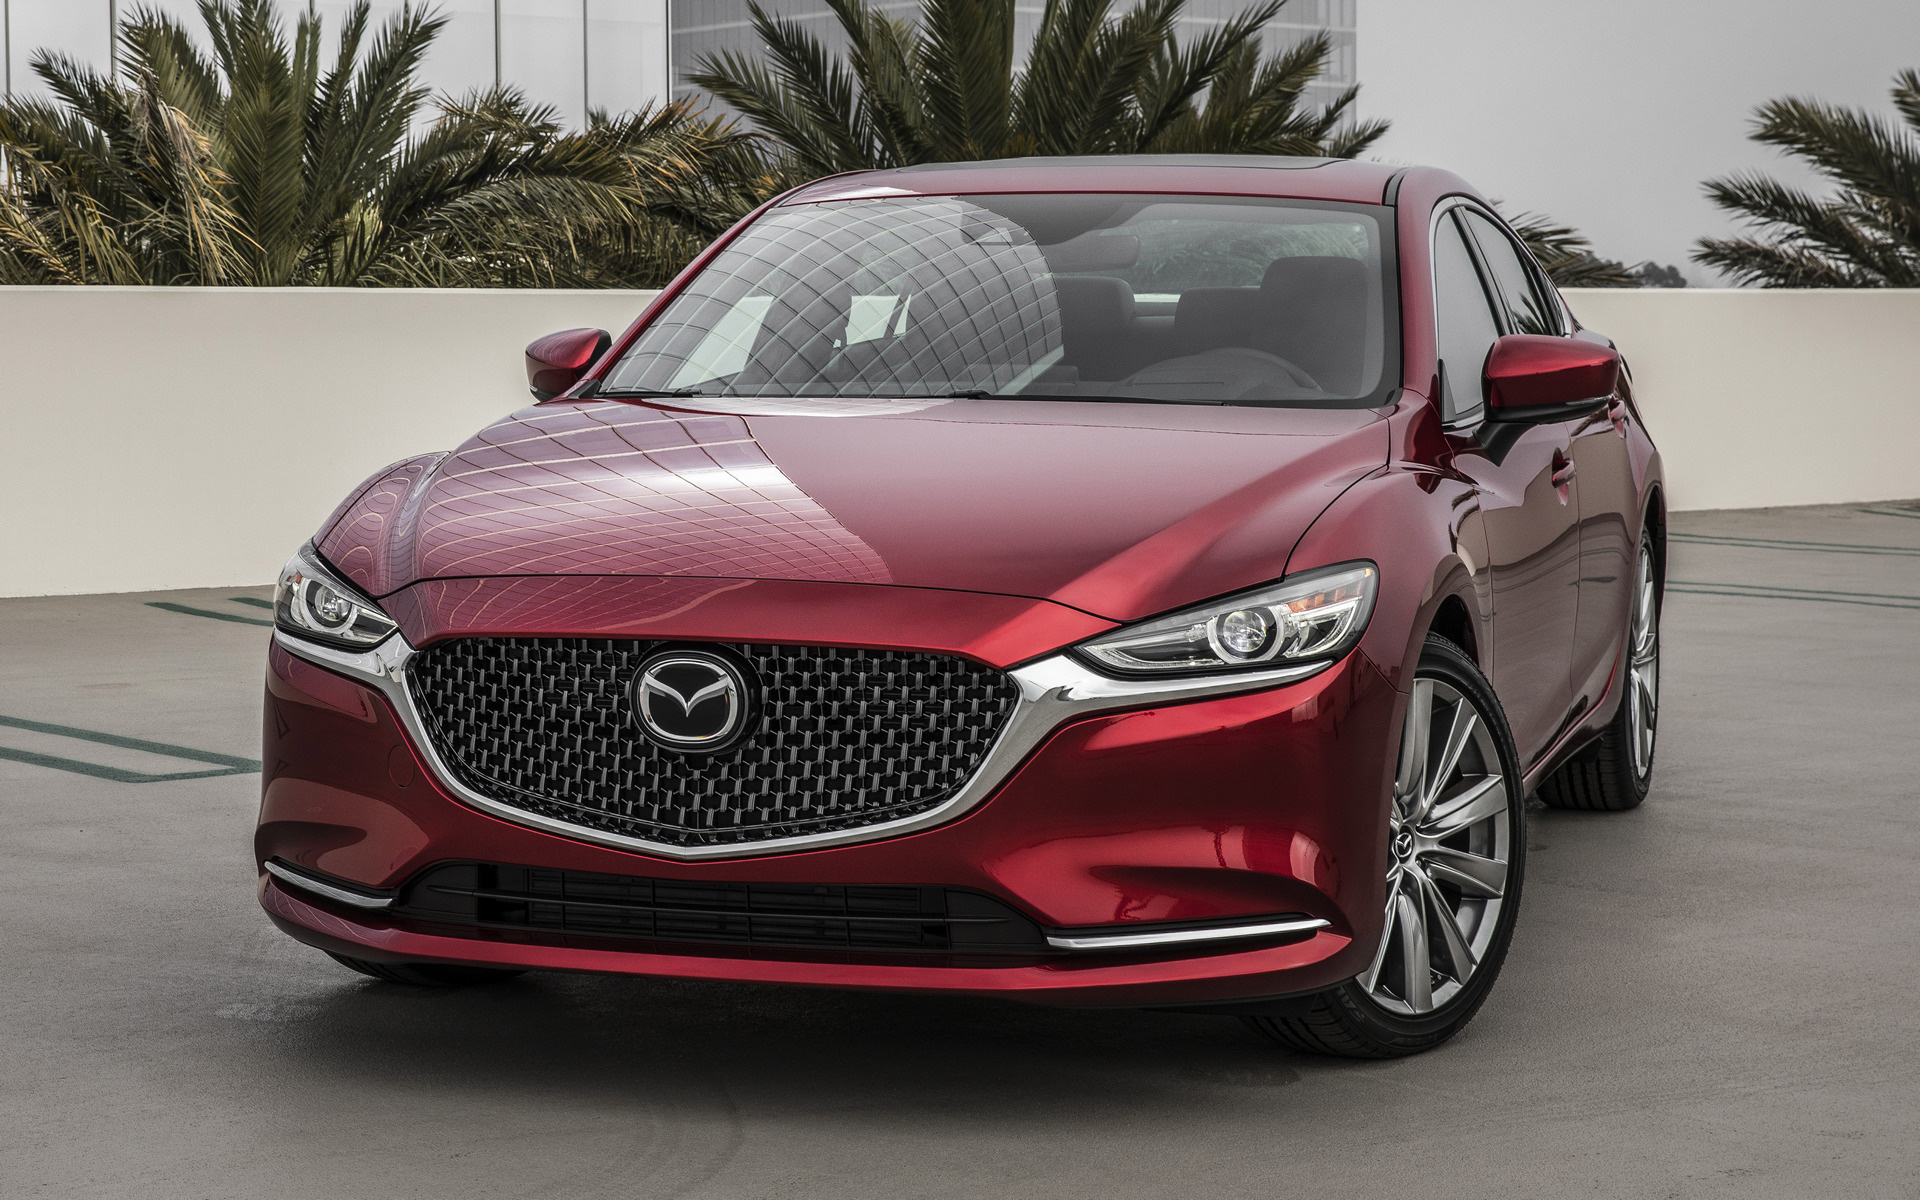 2018 Mazda6 (US) - Wallpapers and HD Images | Car Pixel